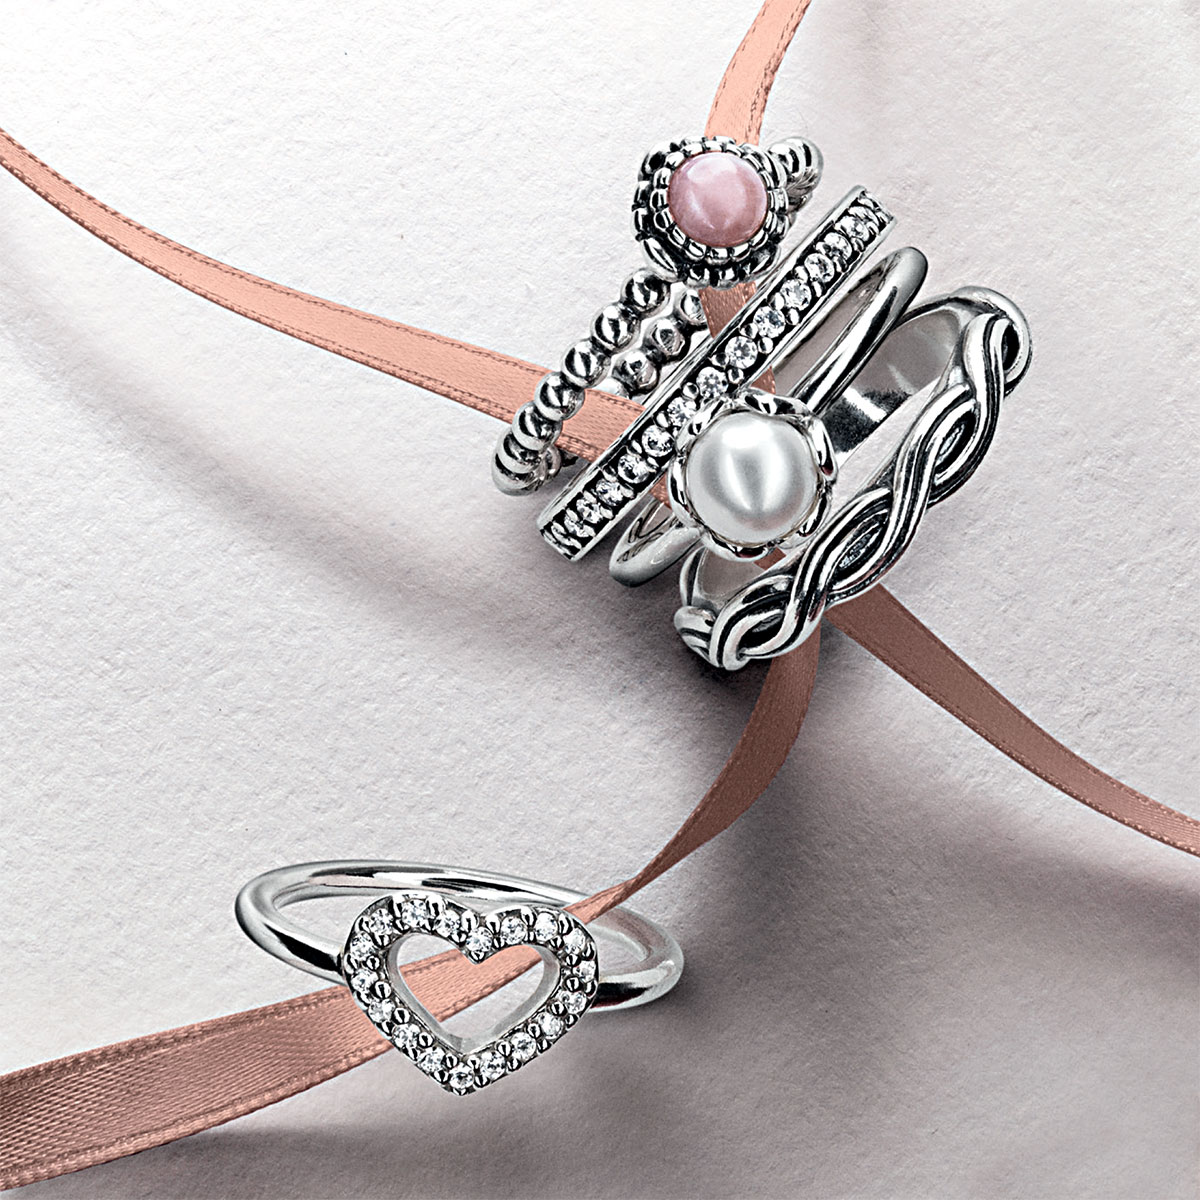 PANDORA Pink Opal October Birthday Bloom Stackable Ring -  Pancharmbracelets.com